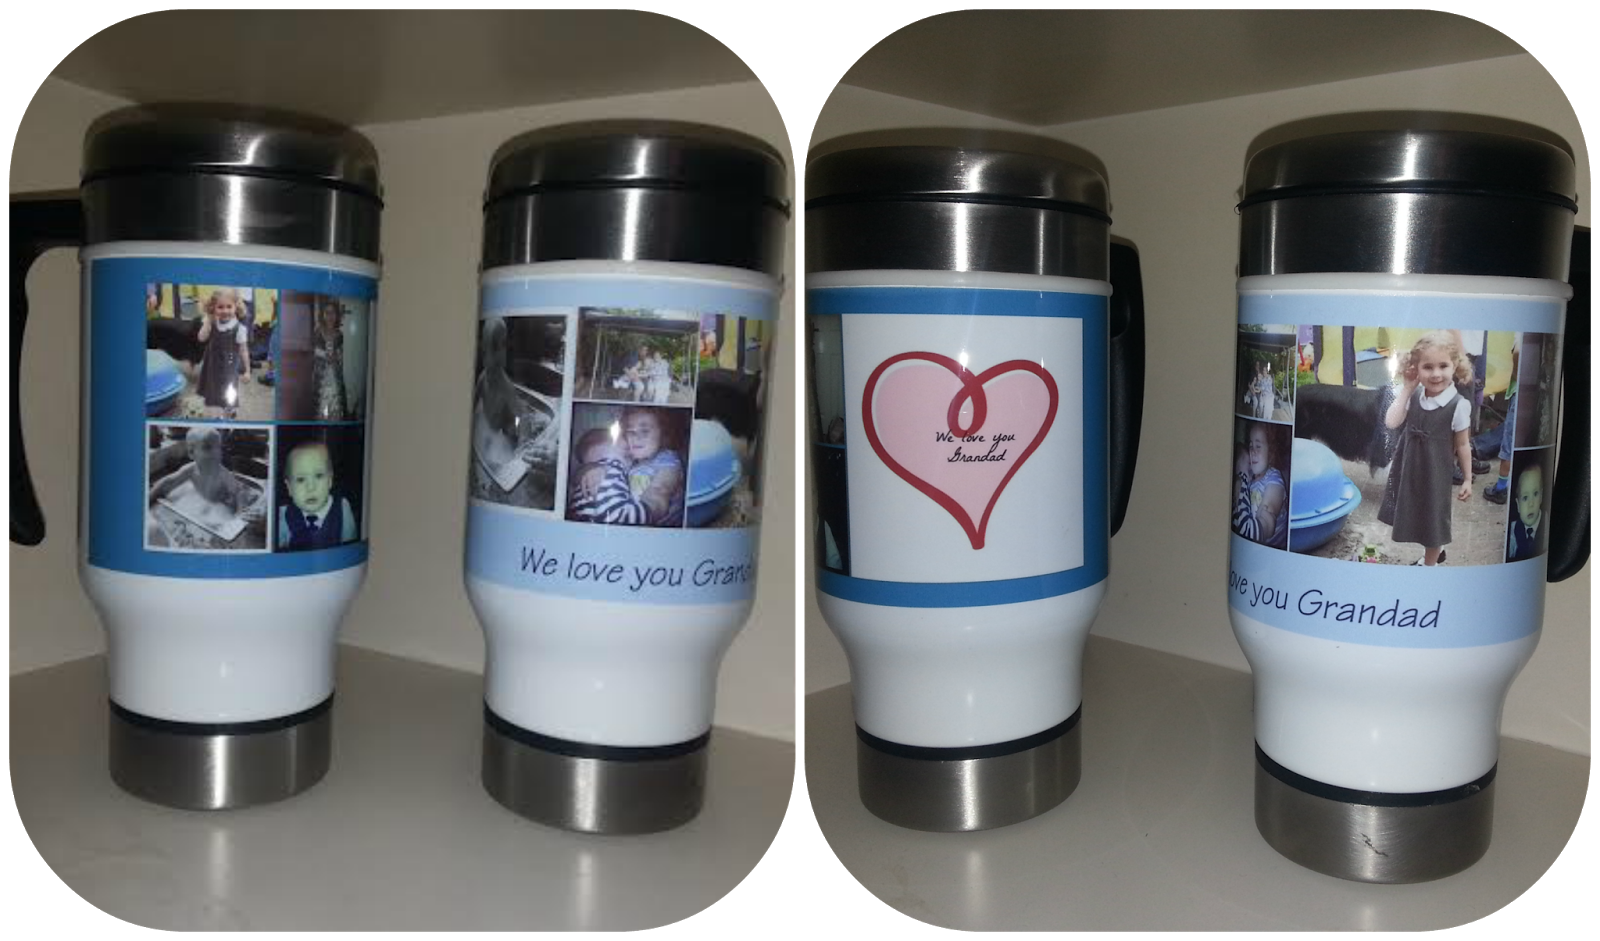 Sip in style with photo mug-making tips Perk up your pantry with one or more of our custom photo mugs. Brew a cup of coffee or tea with a unique personalised photo mug that you or your loved ones will enjoy.